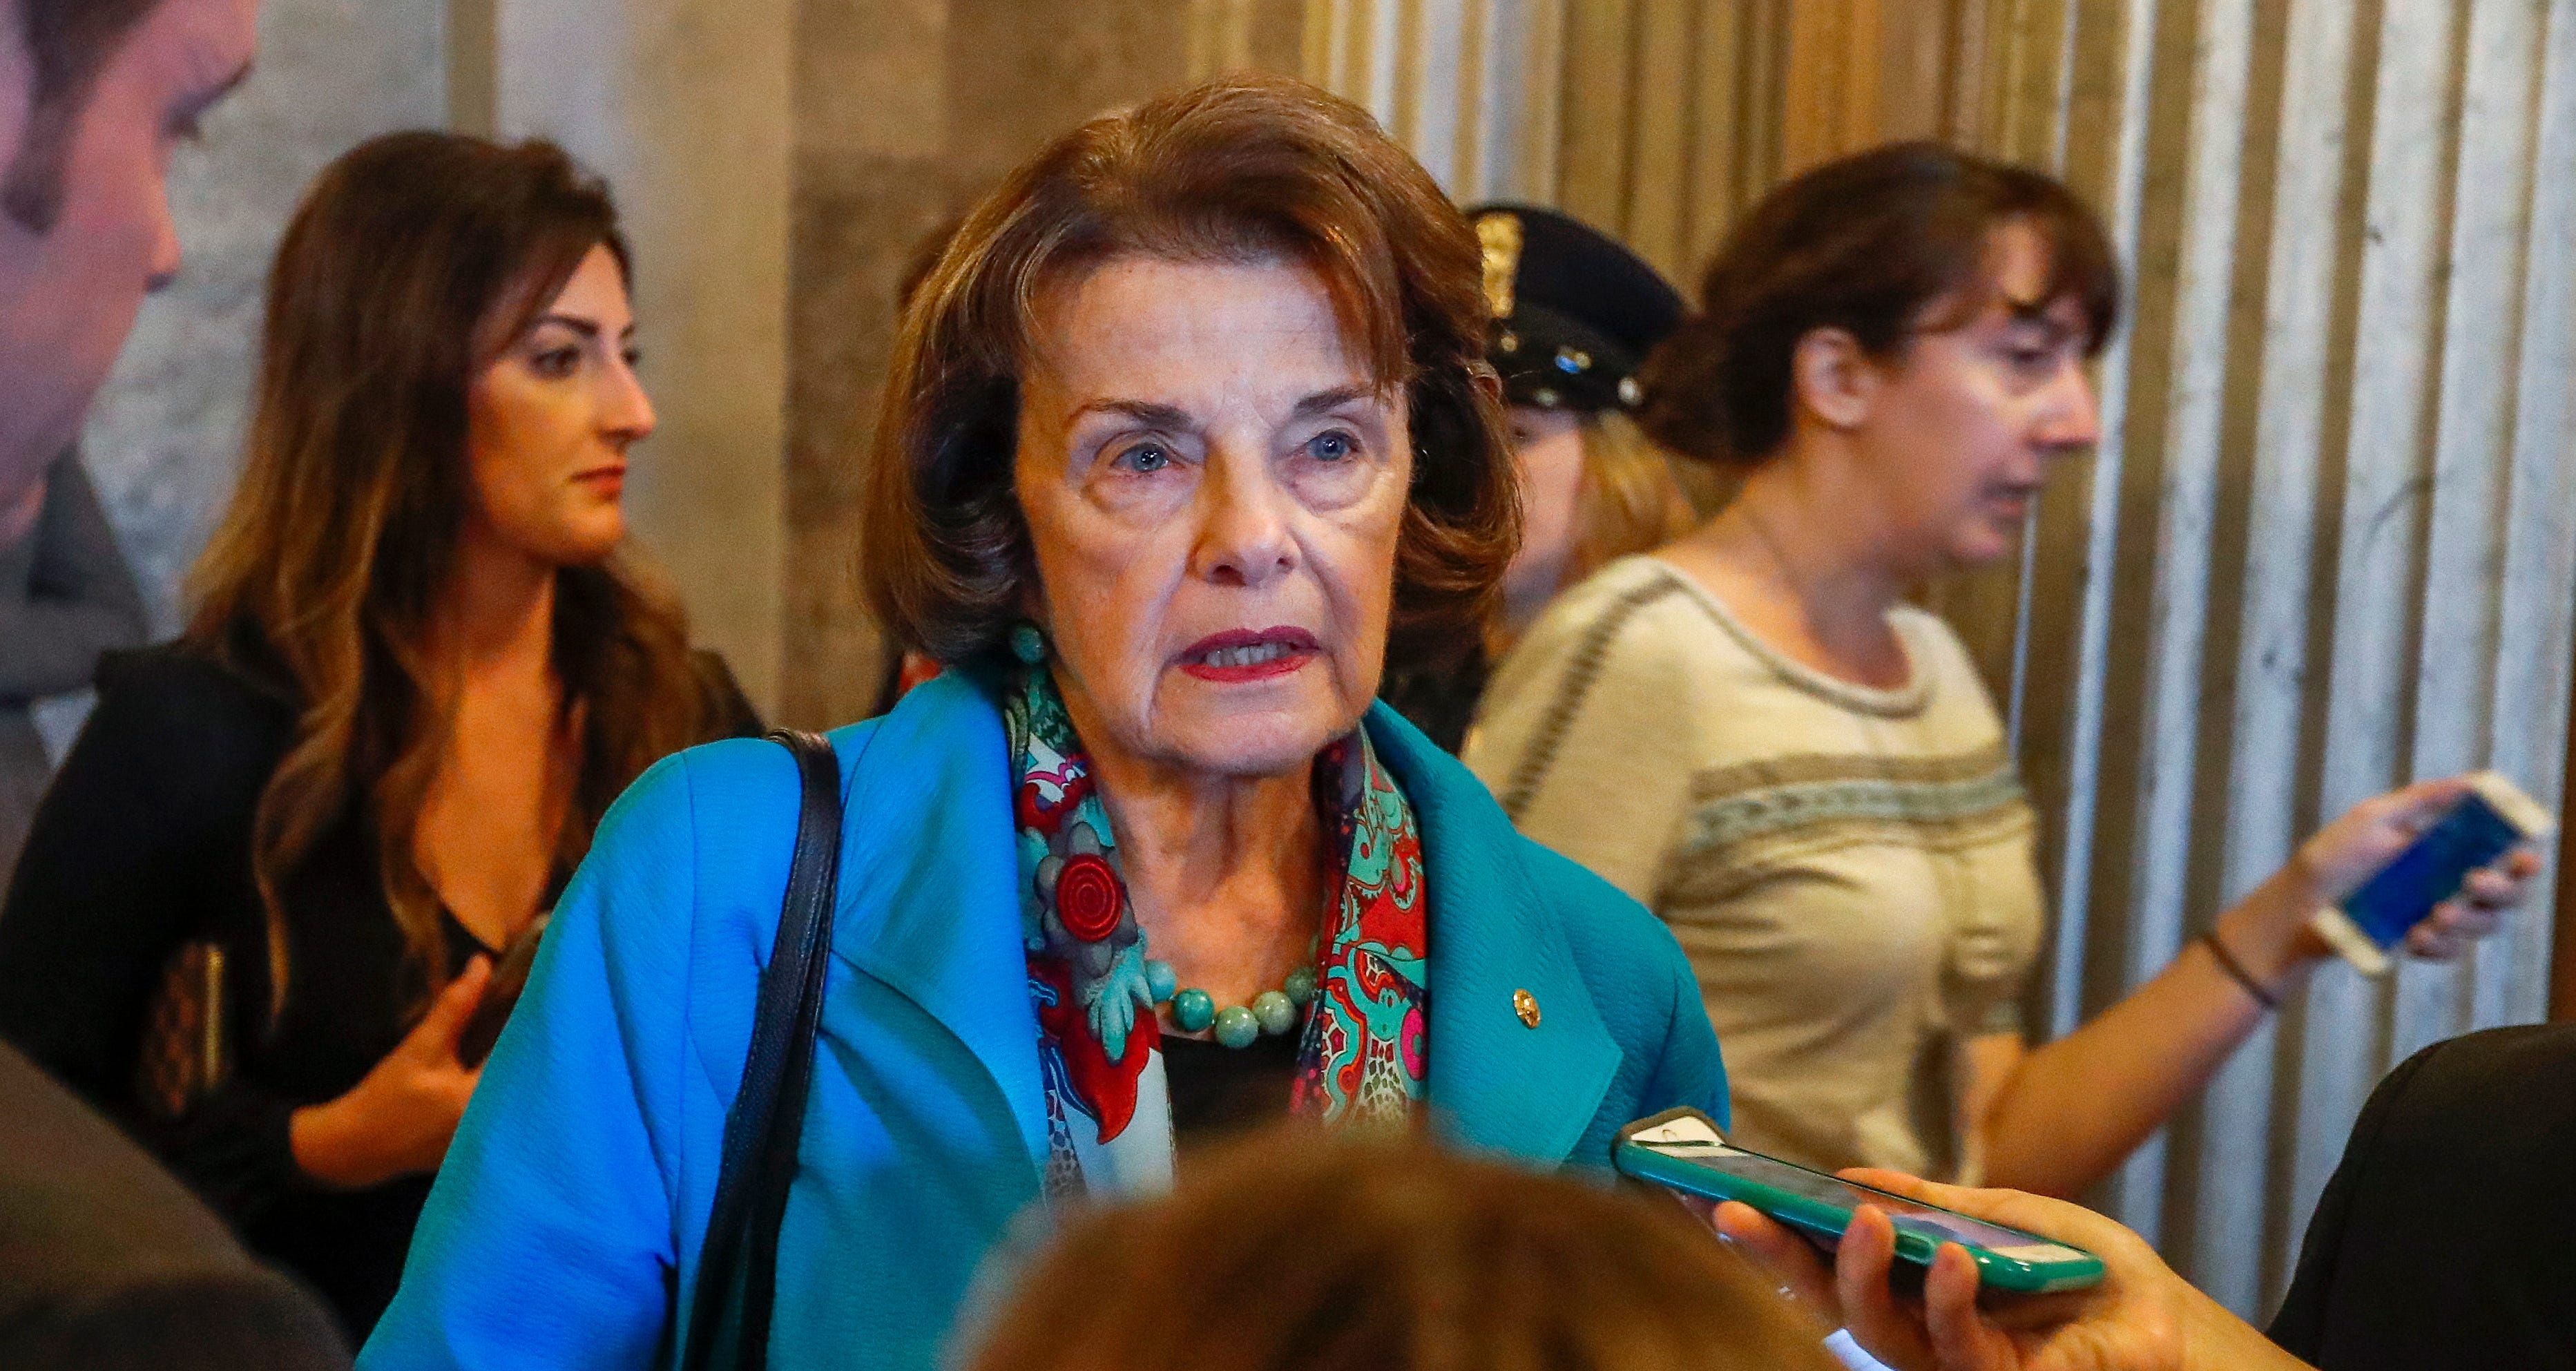 Sen. Dianne Feinstein, D-Calif., leaves the chambers after the Senate voted to confirm Supreme Court nominee Judge Brett Kavanaugh on OCt. 6, 2018, in Washington.